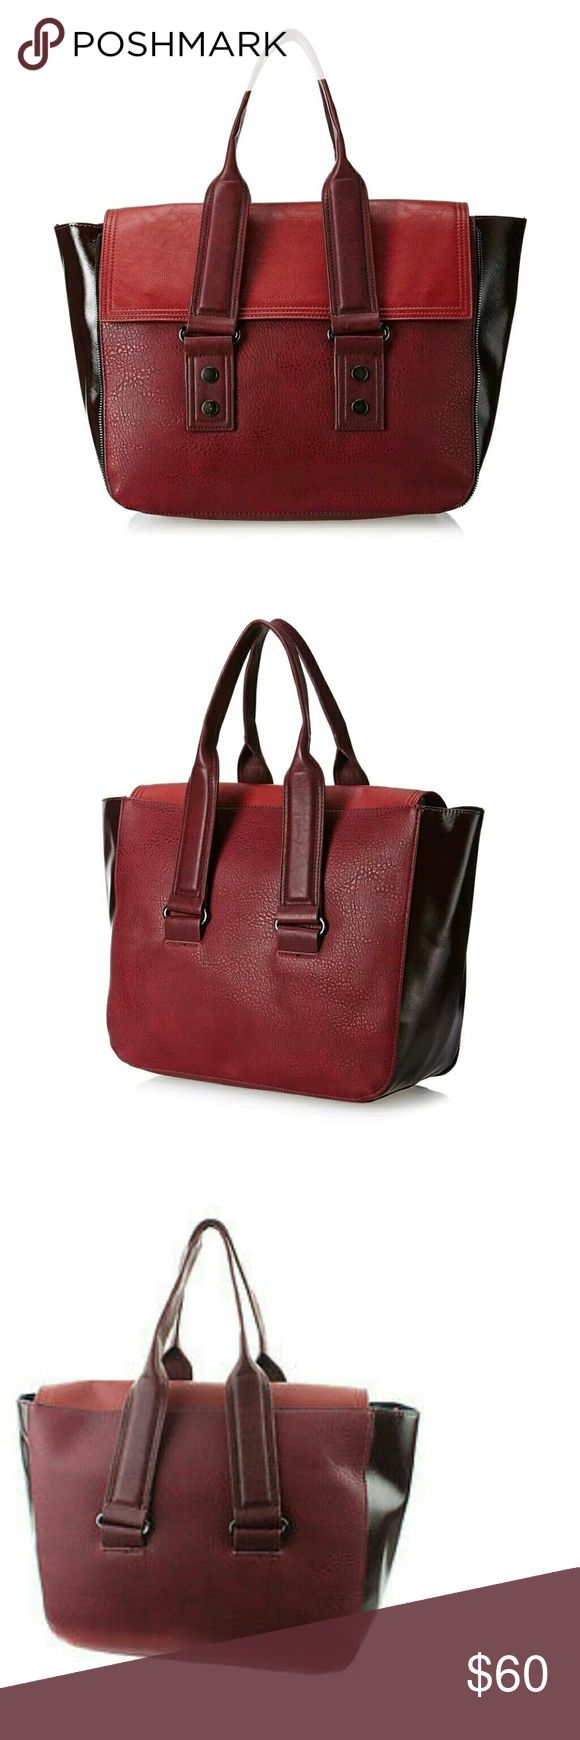 """French Connection elite tote burgundy work bag FRENCH CONNECTION Elite Tote Burgundy Womens Handbag  Retail $116 13"""" high 18.5"""" wide Burgundy French Connection Bags Totes"""